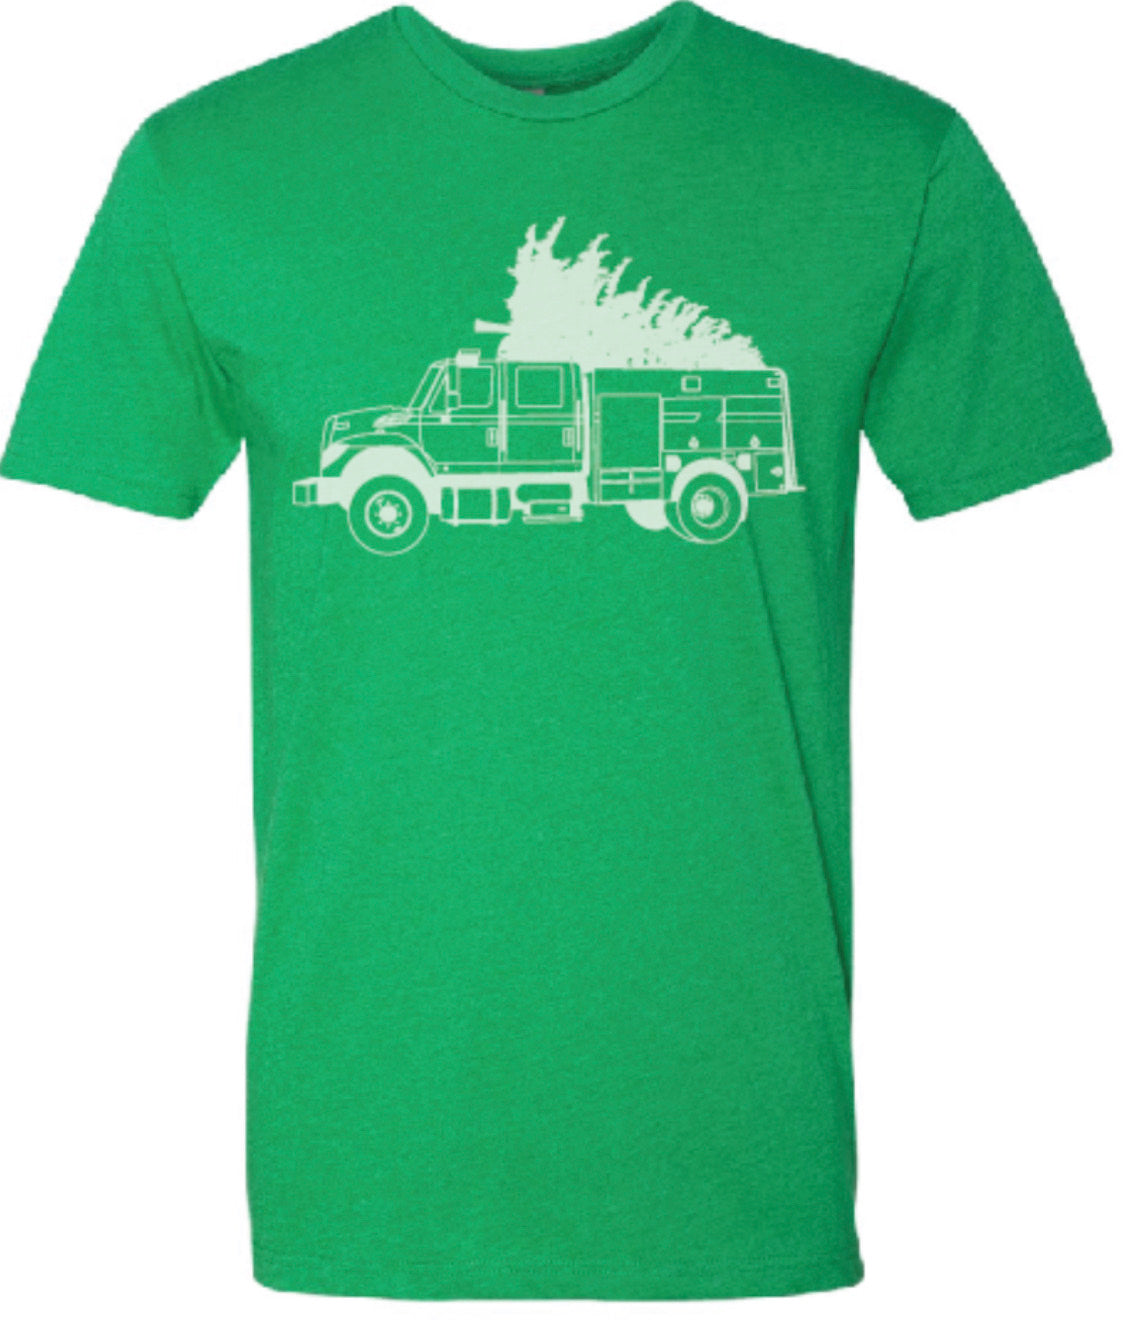 TYPE 3 TREE - TSHIRT